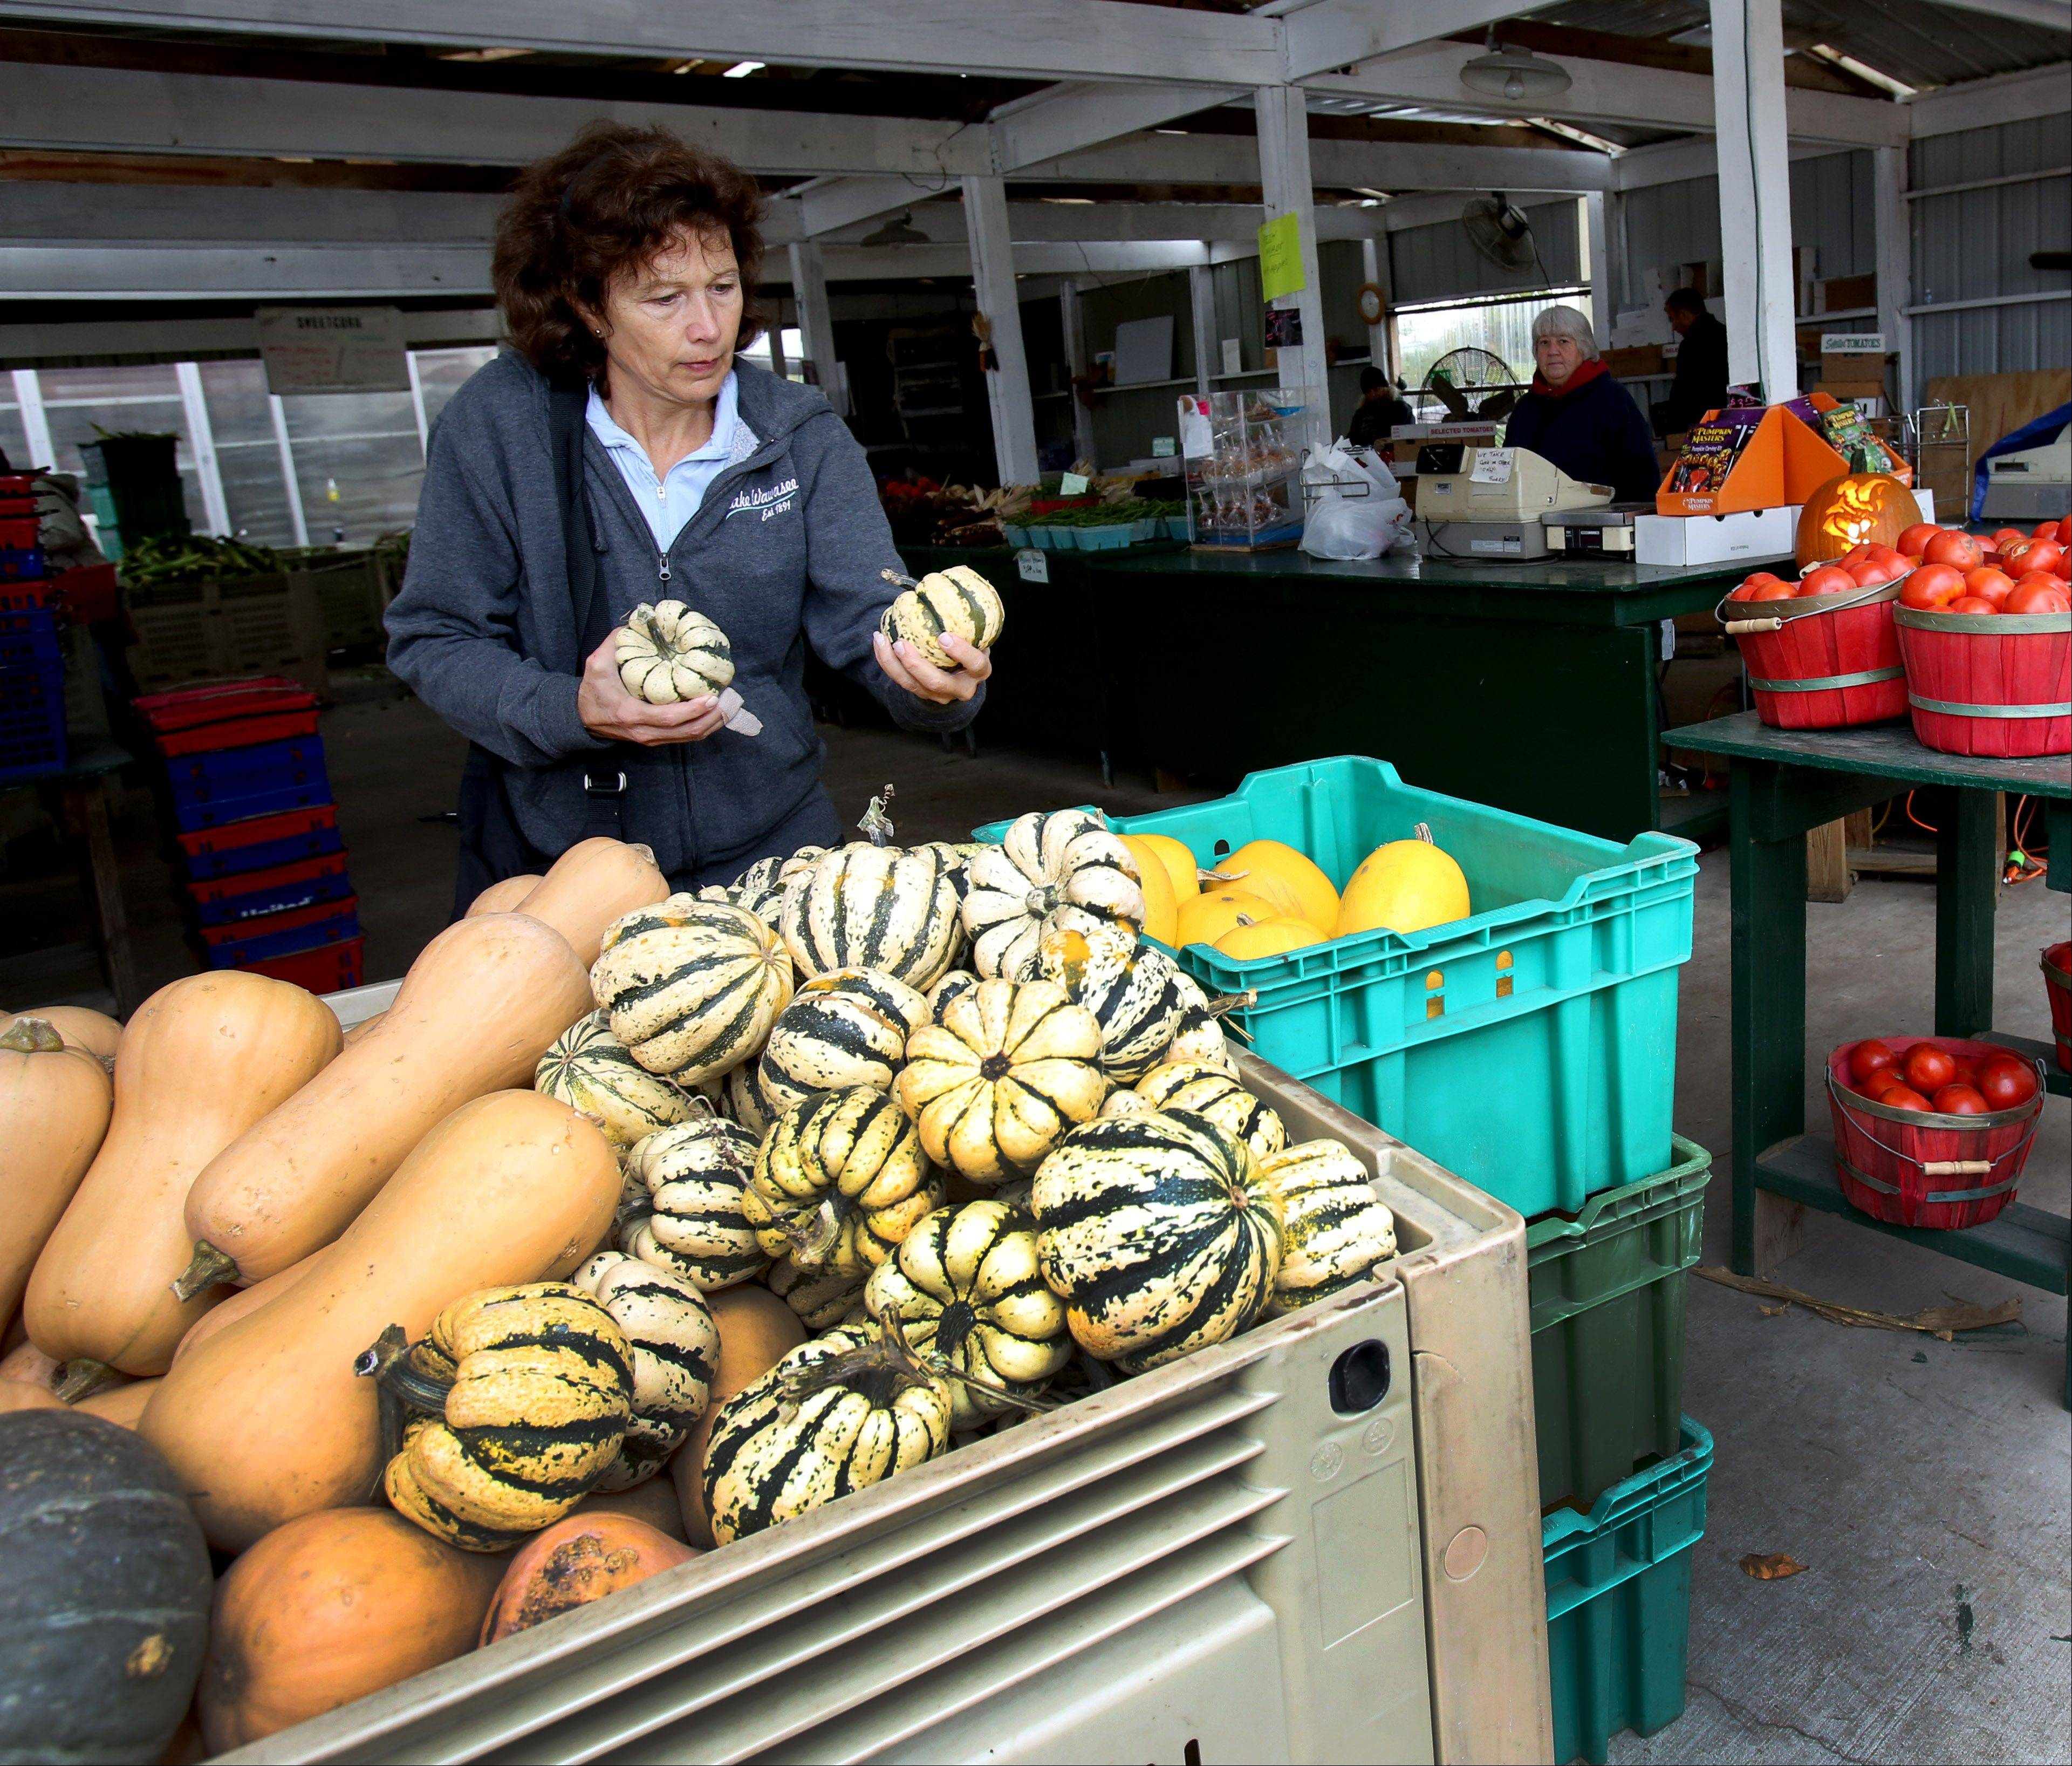 Beth Shadid of Winfield picks out heart of gold squash at The Farm in Carol Stream, which is celebrating its 50th year selling fresh seasonal produce in DuPage County.